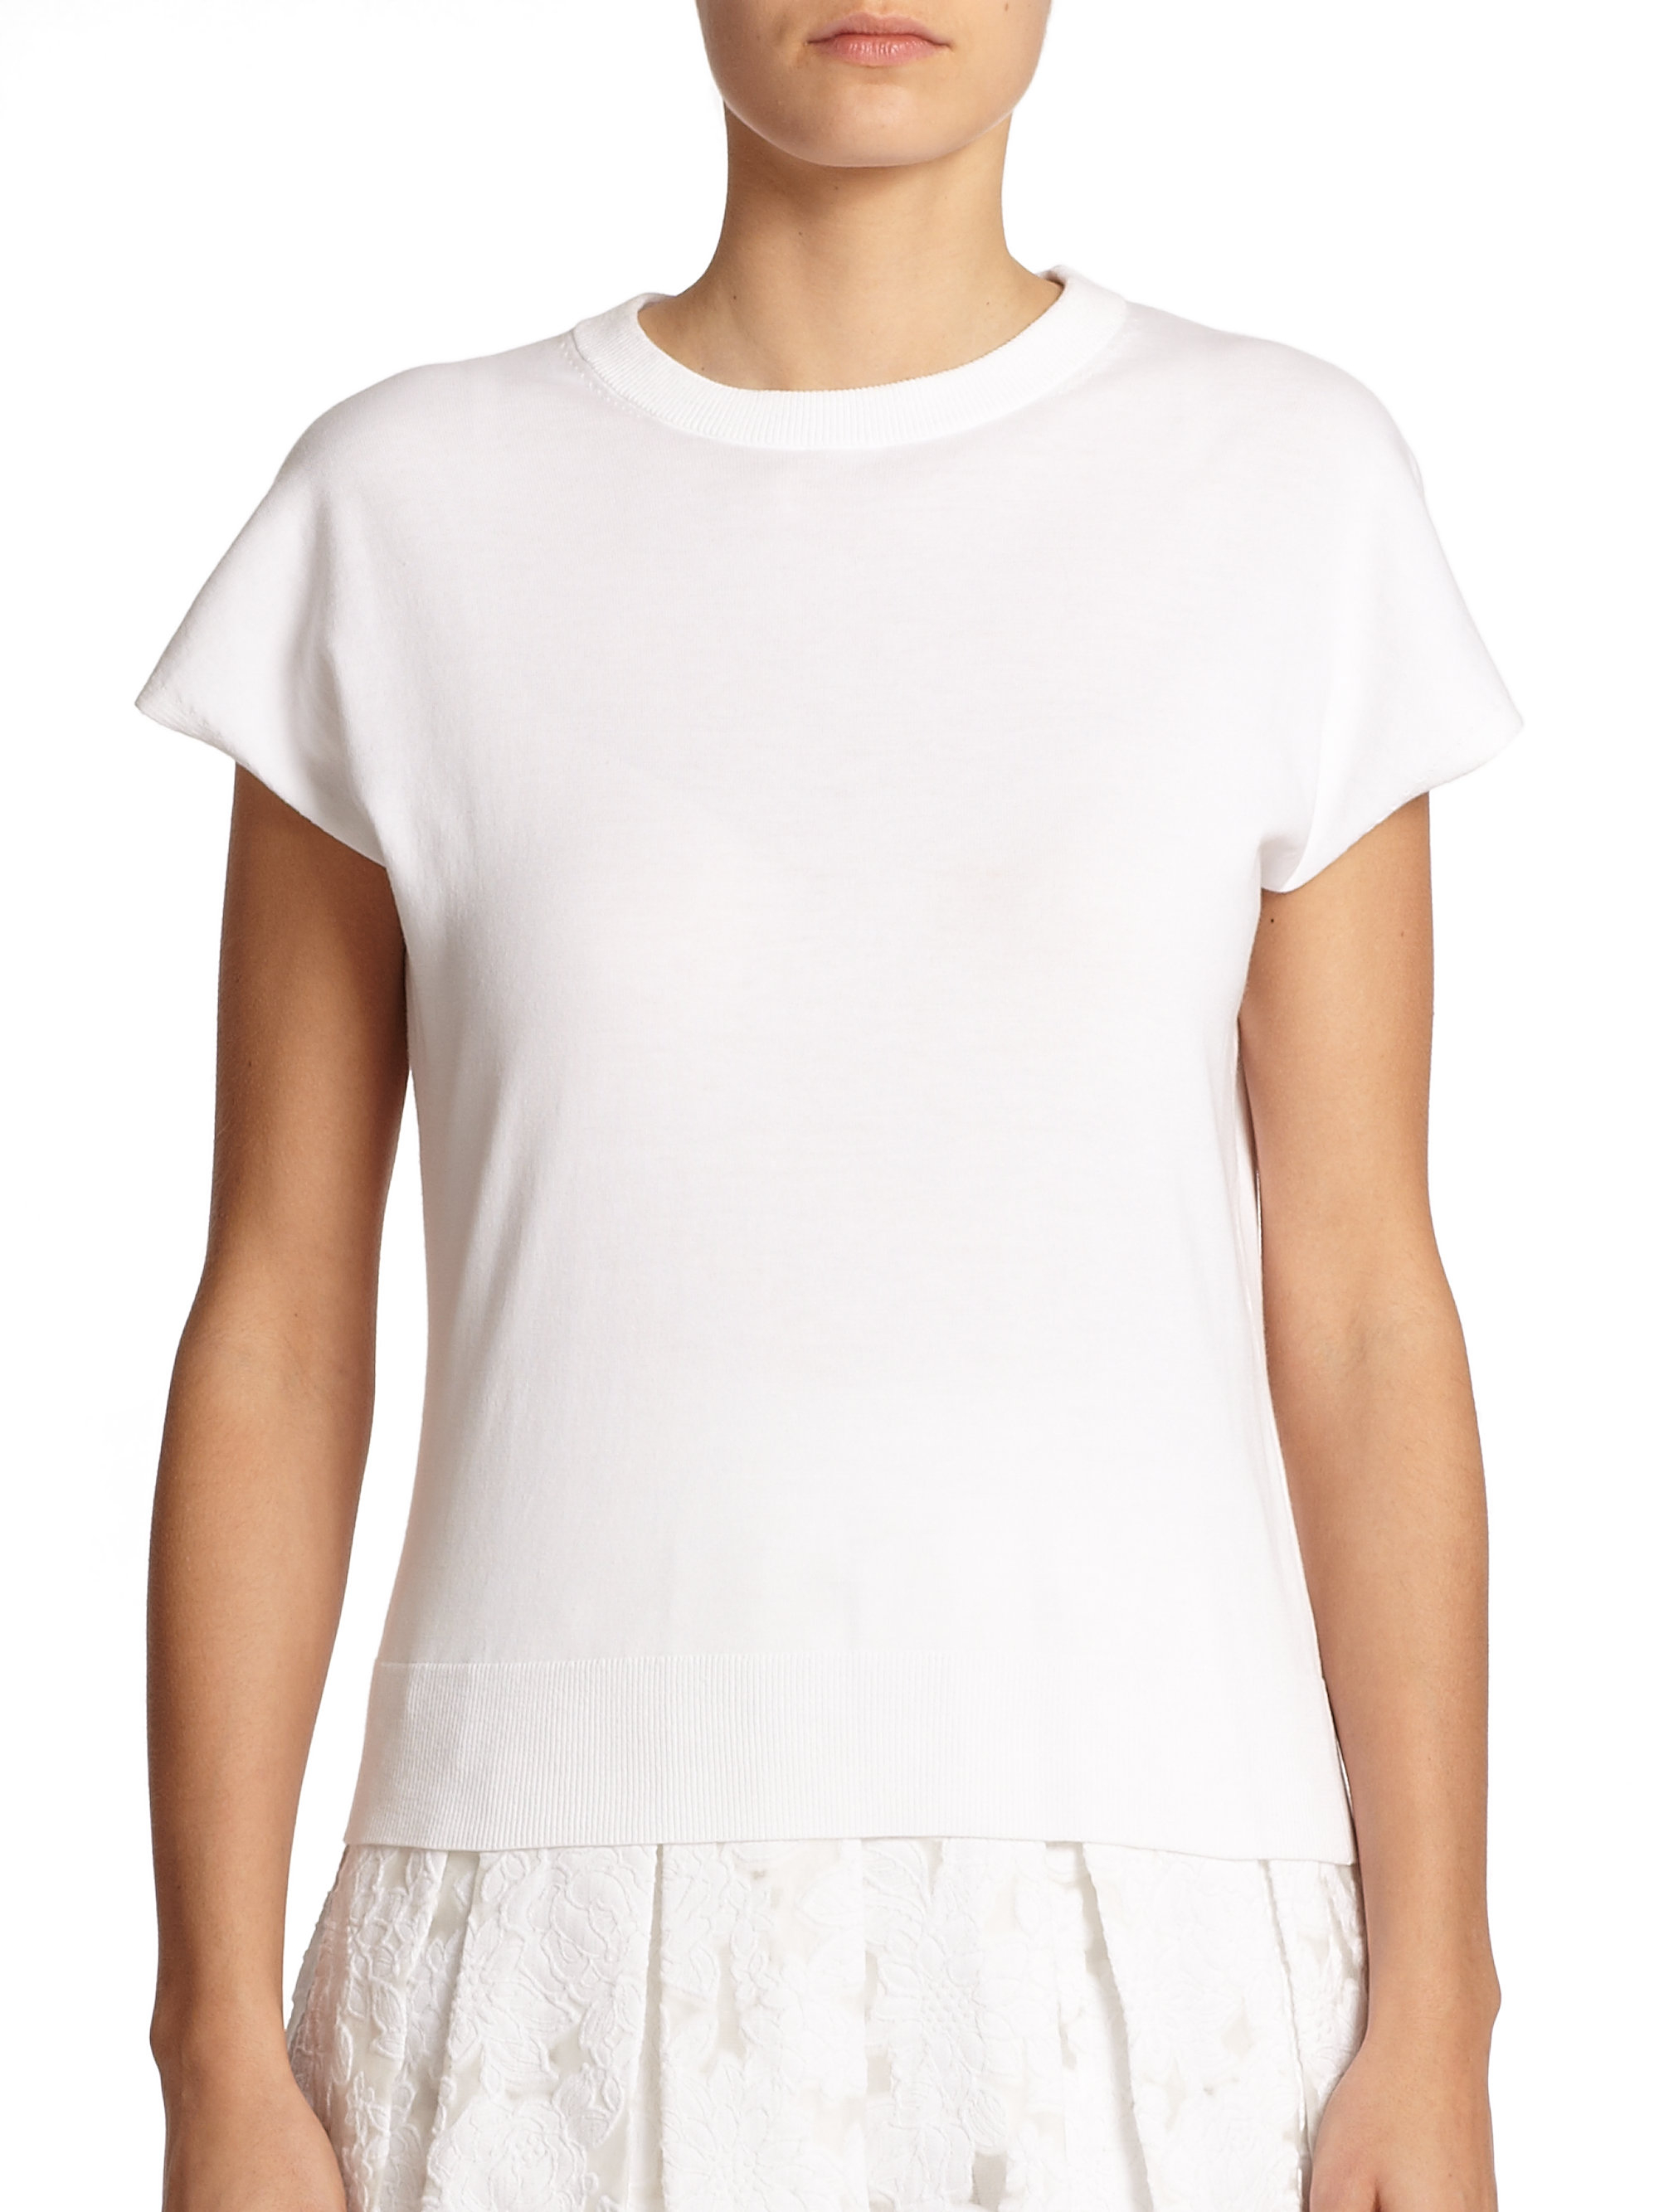 michael kors cotton knit pullover in white lyst. Black Bedroom Furniture Sets. Home Design Ideas